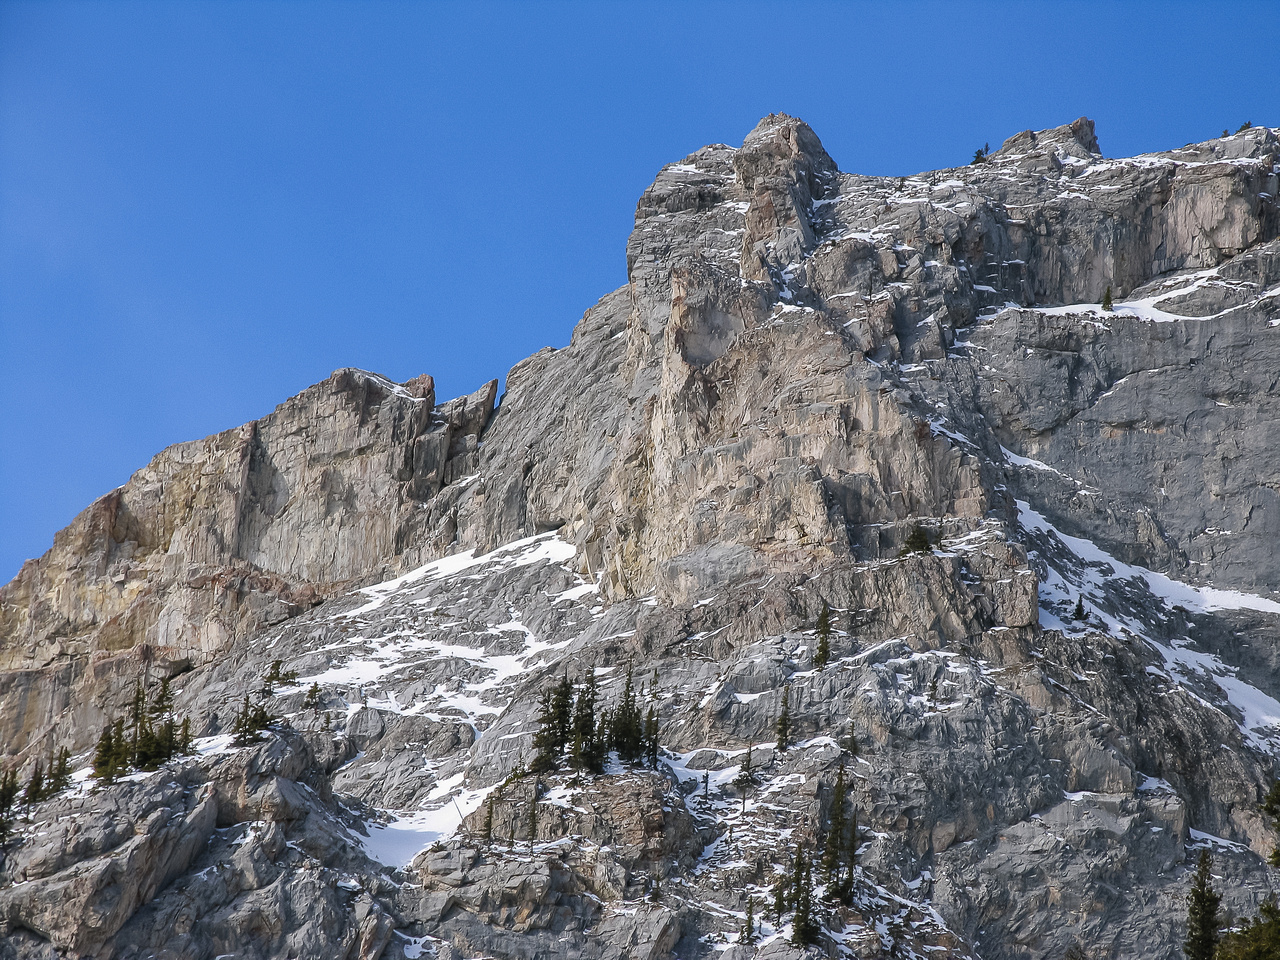 Steep cliffs line the ascent gully. Climbers have fallen down these cliffs while free soloing. :(